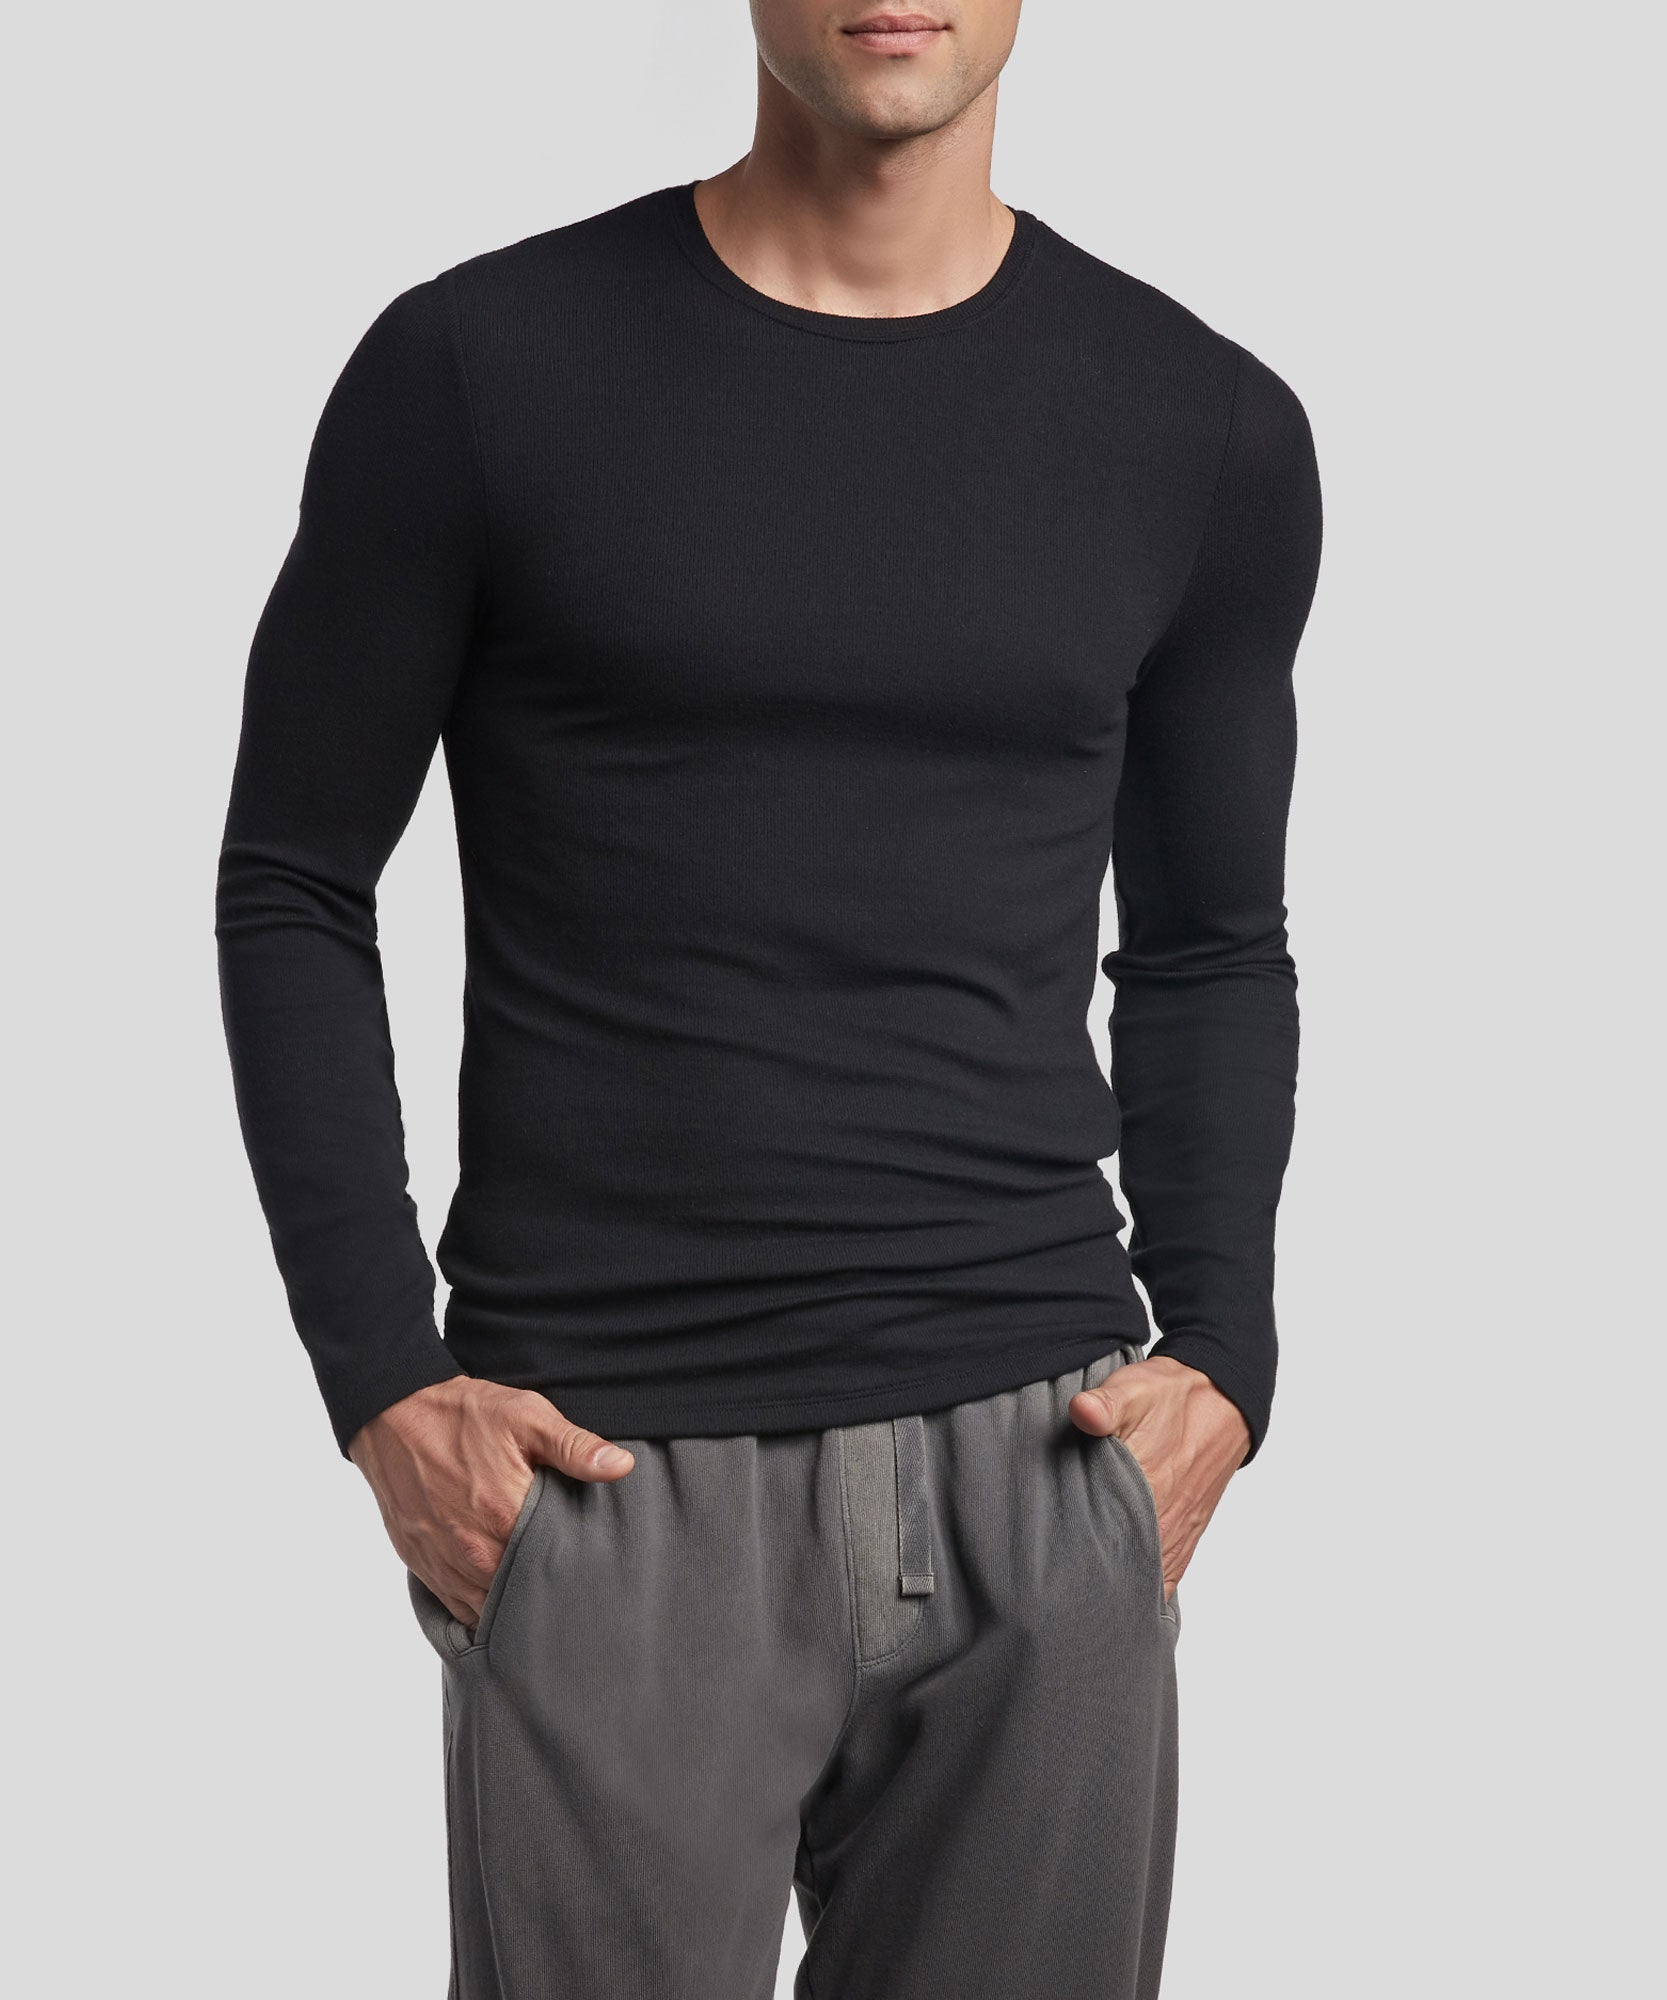 Black Modal Rib Long Sleeve Crew Neck Tee - Men's Ribbed Tee by ATM Anthony Thomas Melillo